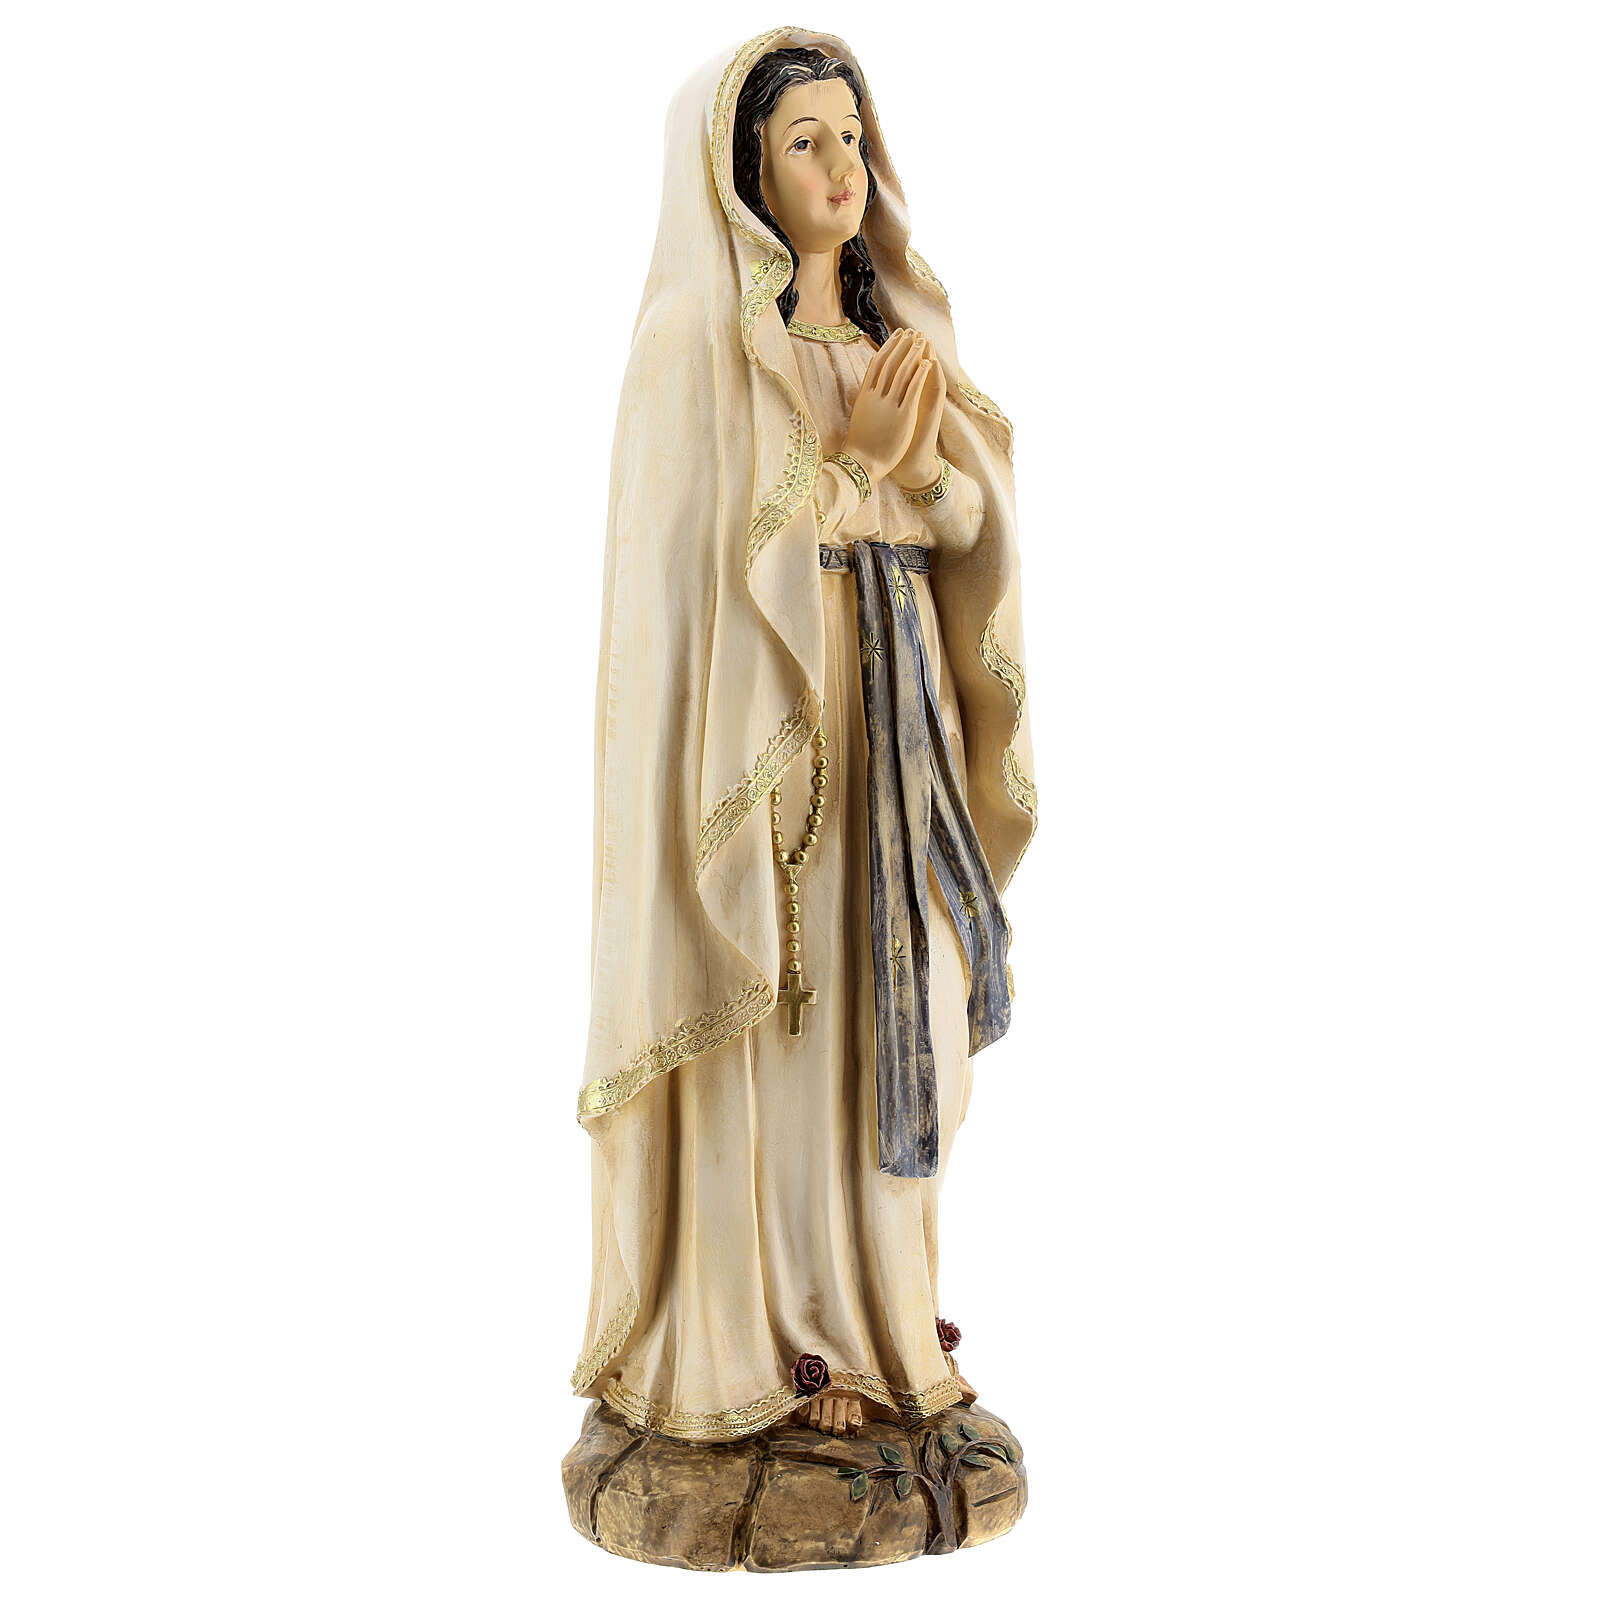 Statue of Our Lady of Lourdes roses resin 31 cm 4